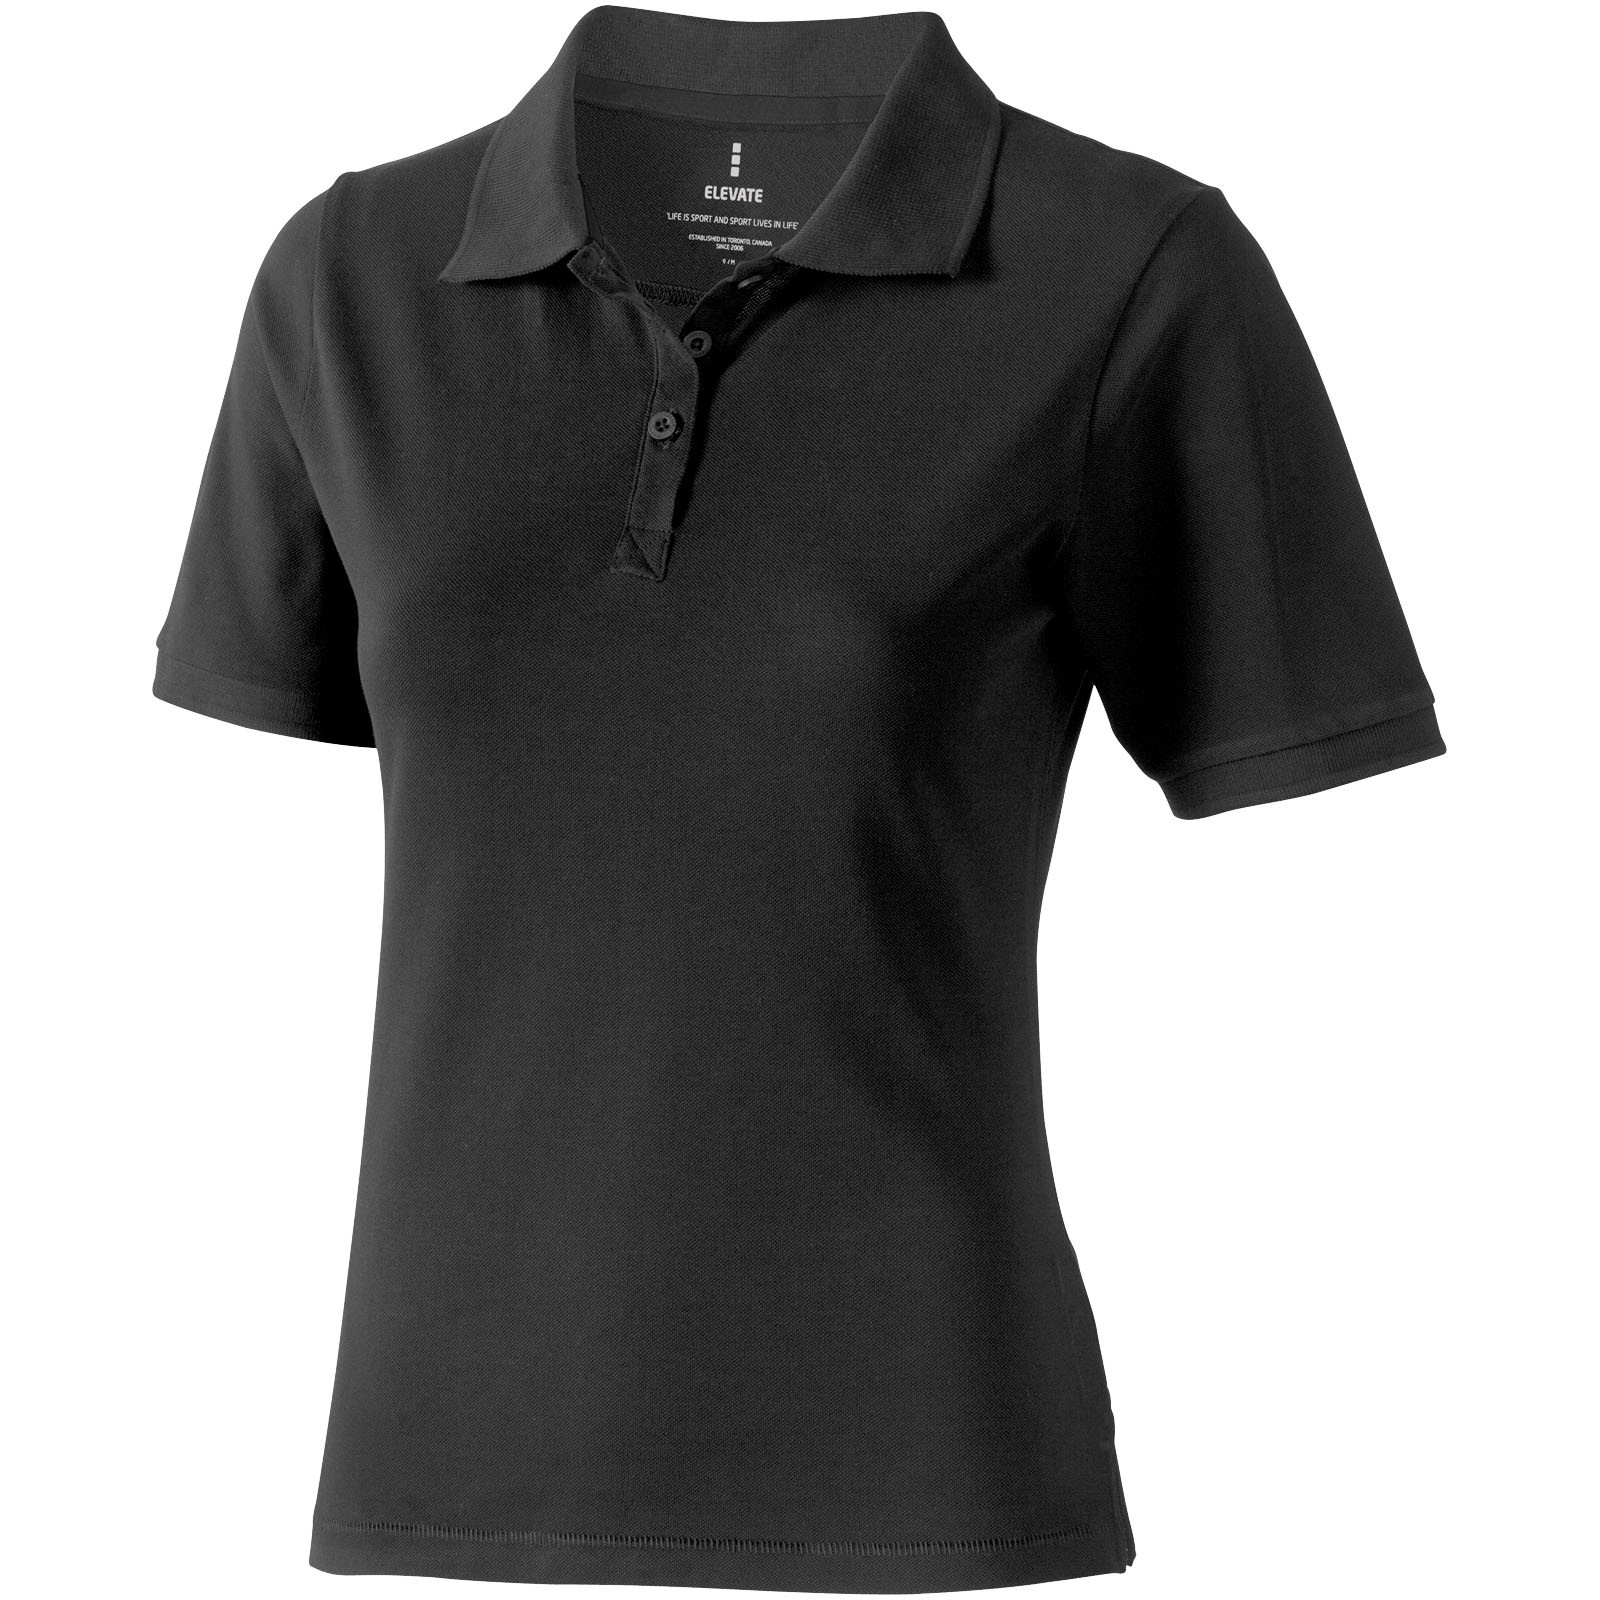 Calgary short sleeve women's polo - Anthracite / S